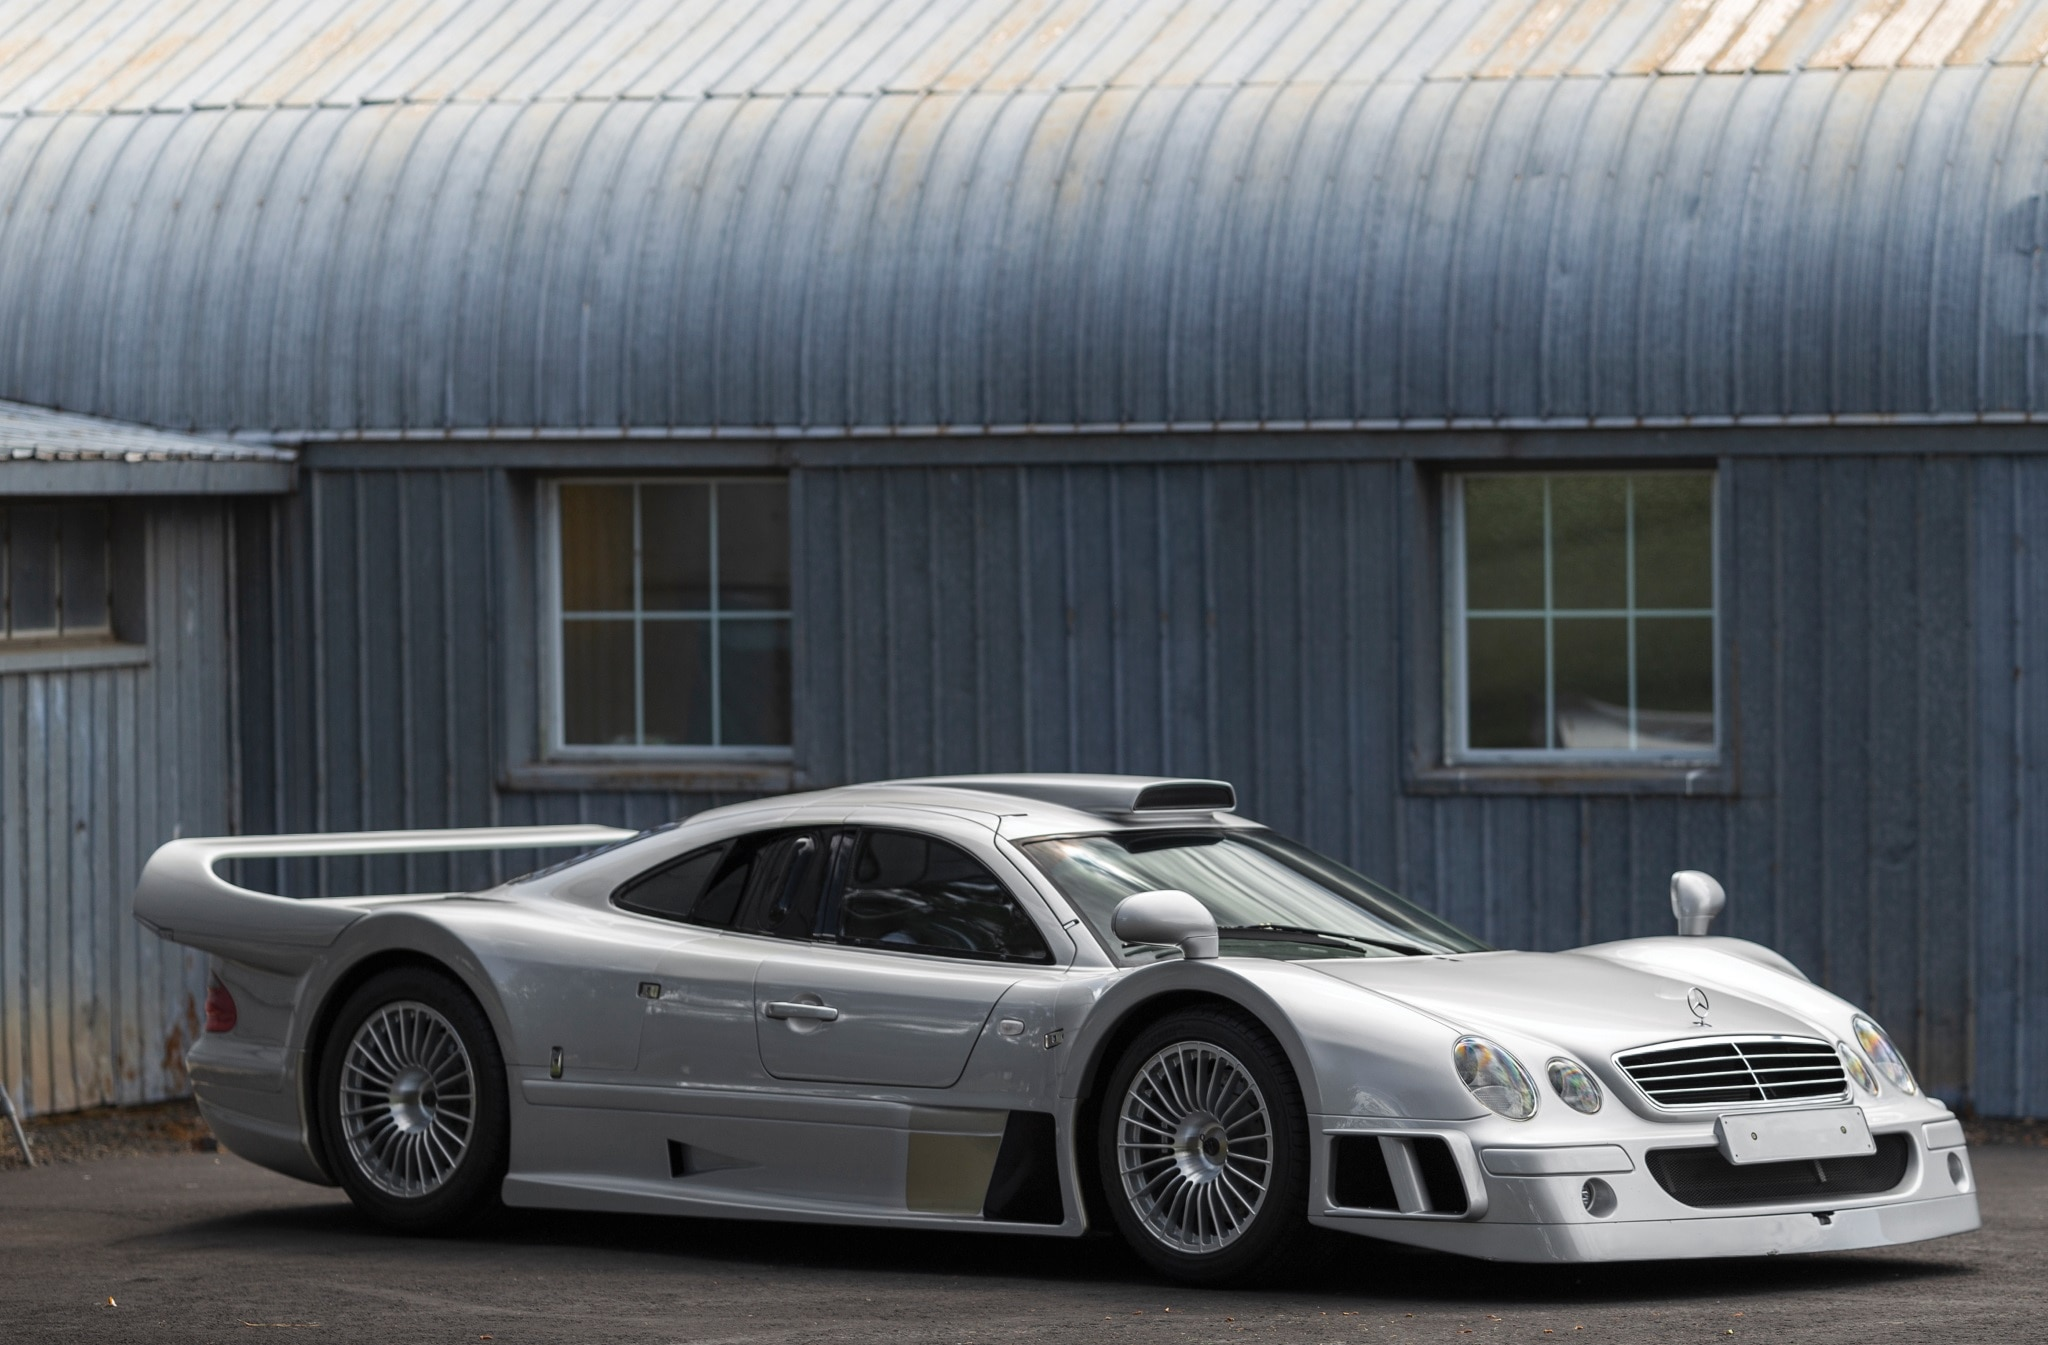 1998 mercedes benz amg clk gtr added to rm sotheby s for Mercedes benz clk 500